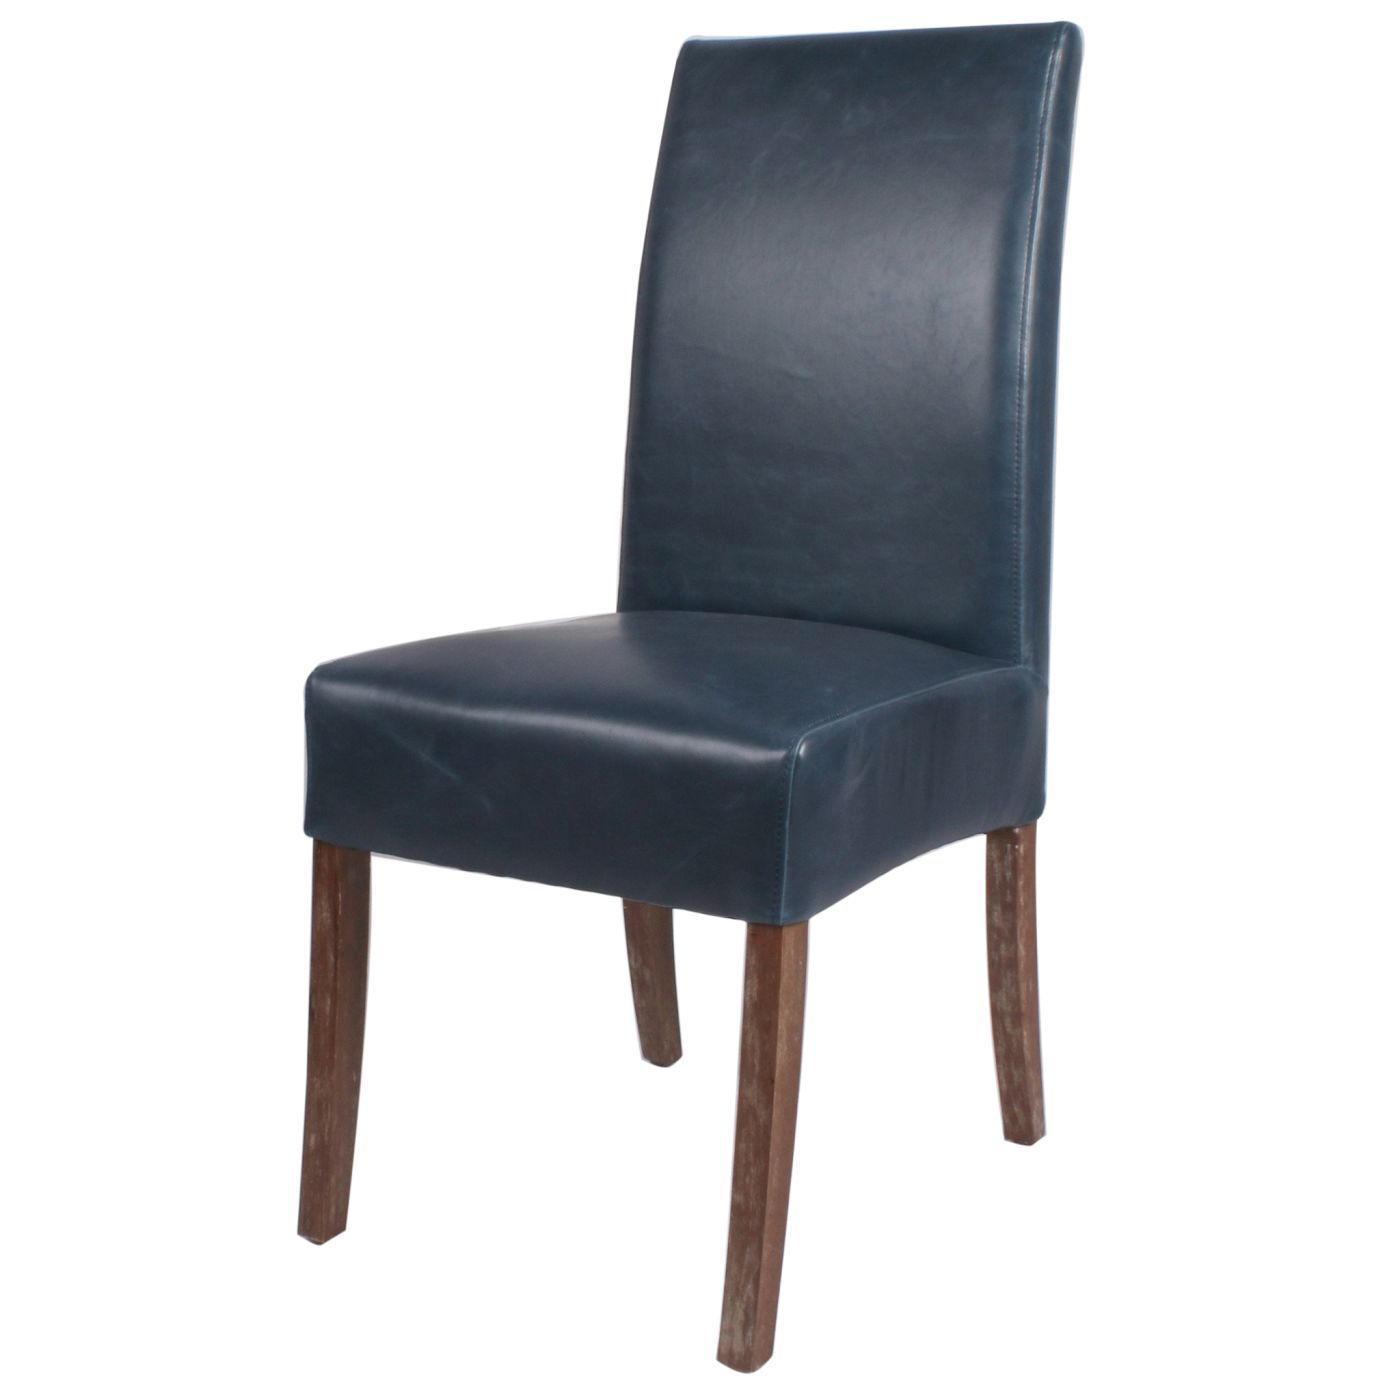 Ekenäs Sessel Valencia Bonded Leather Chair Drift Wood Legs Vintage Blue Set